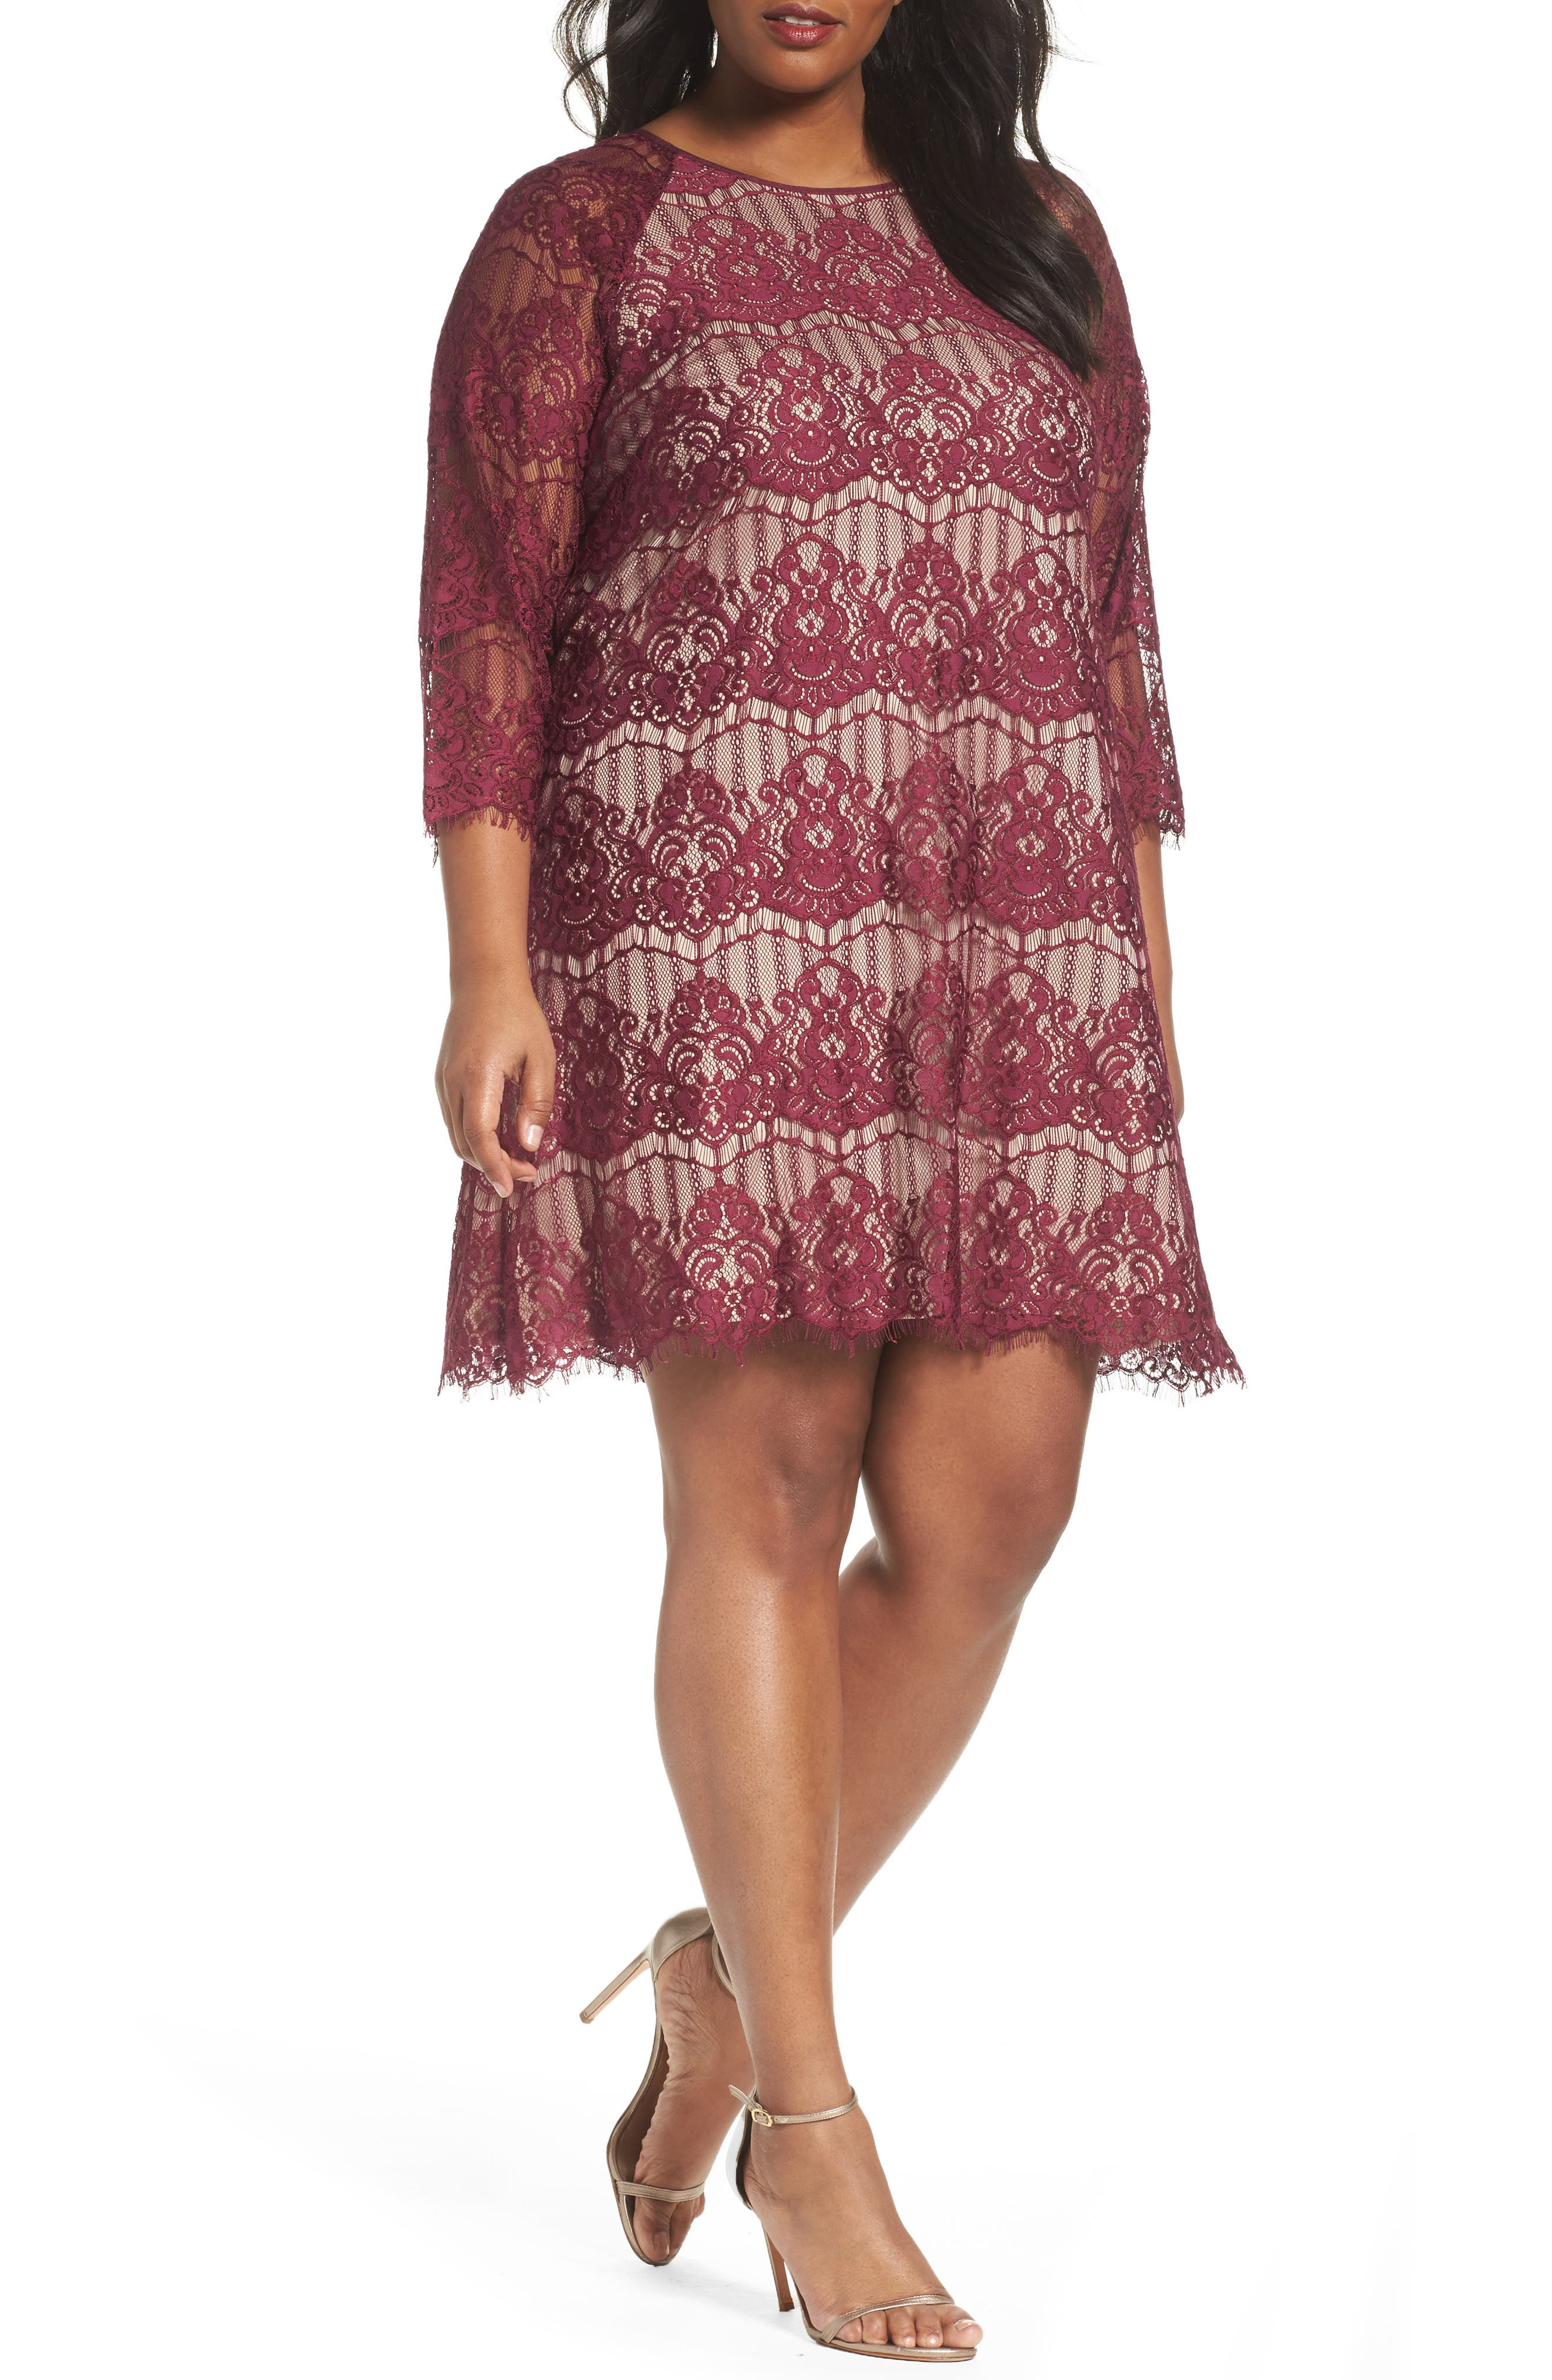 Alternate Image 1 Selected - Adrianna Papell Scalloped Lace Trapeze Dress (Plus Size)